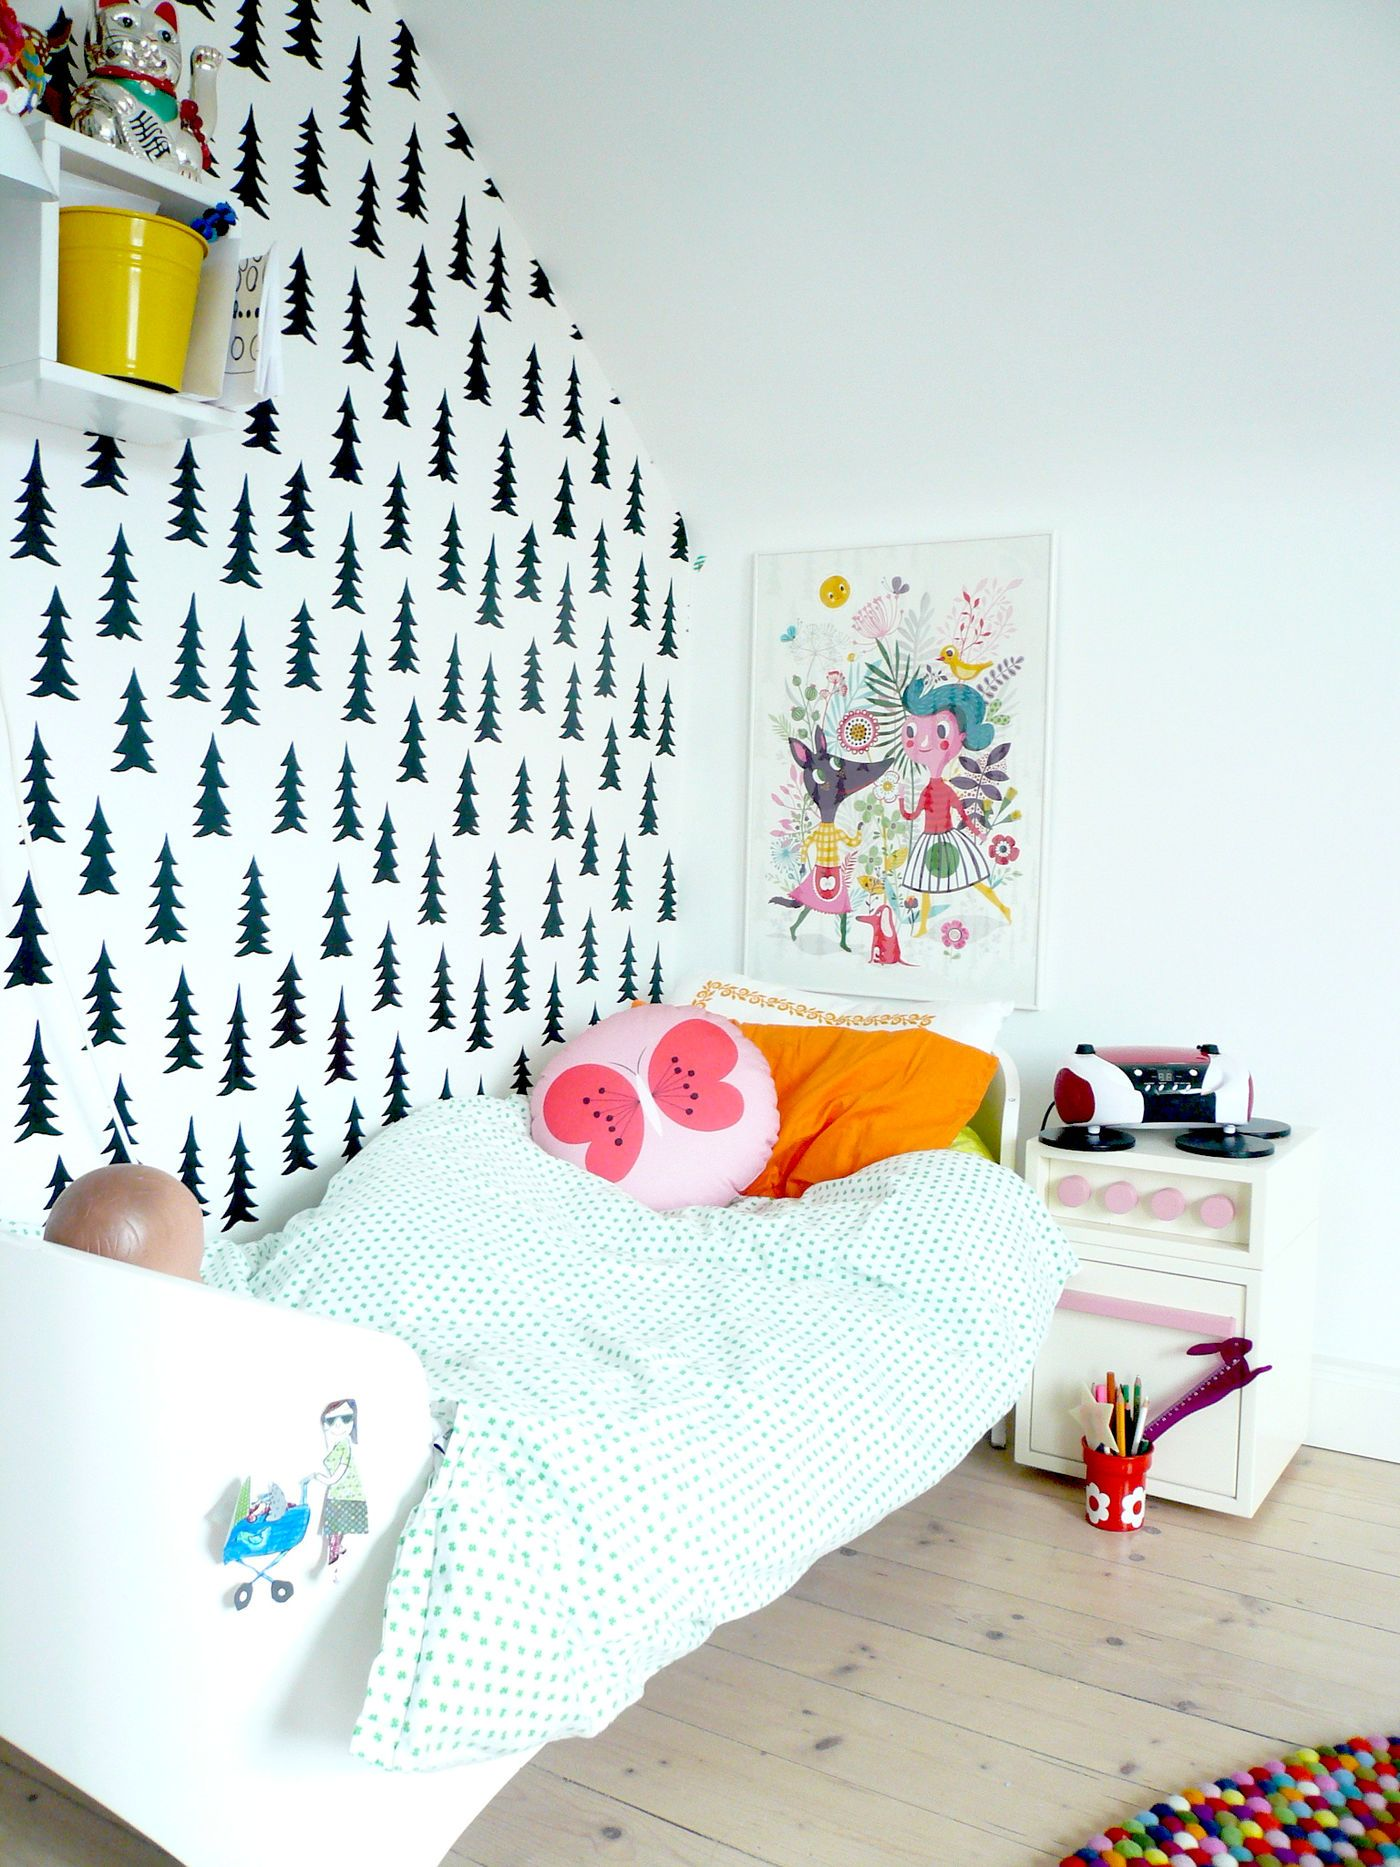 die besten ideen f r die wandgestaltung im kinderzimmer seite 3. Black Bedroom Furniture Sets. Home Design Ideas